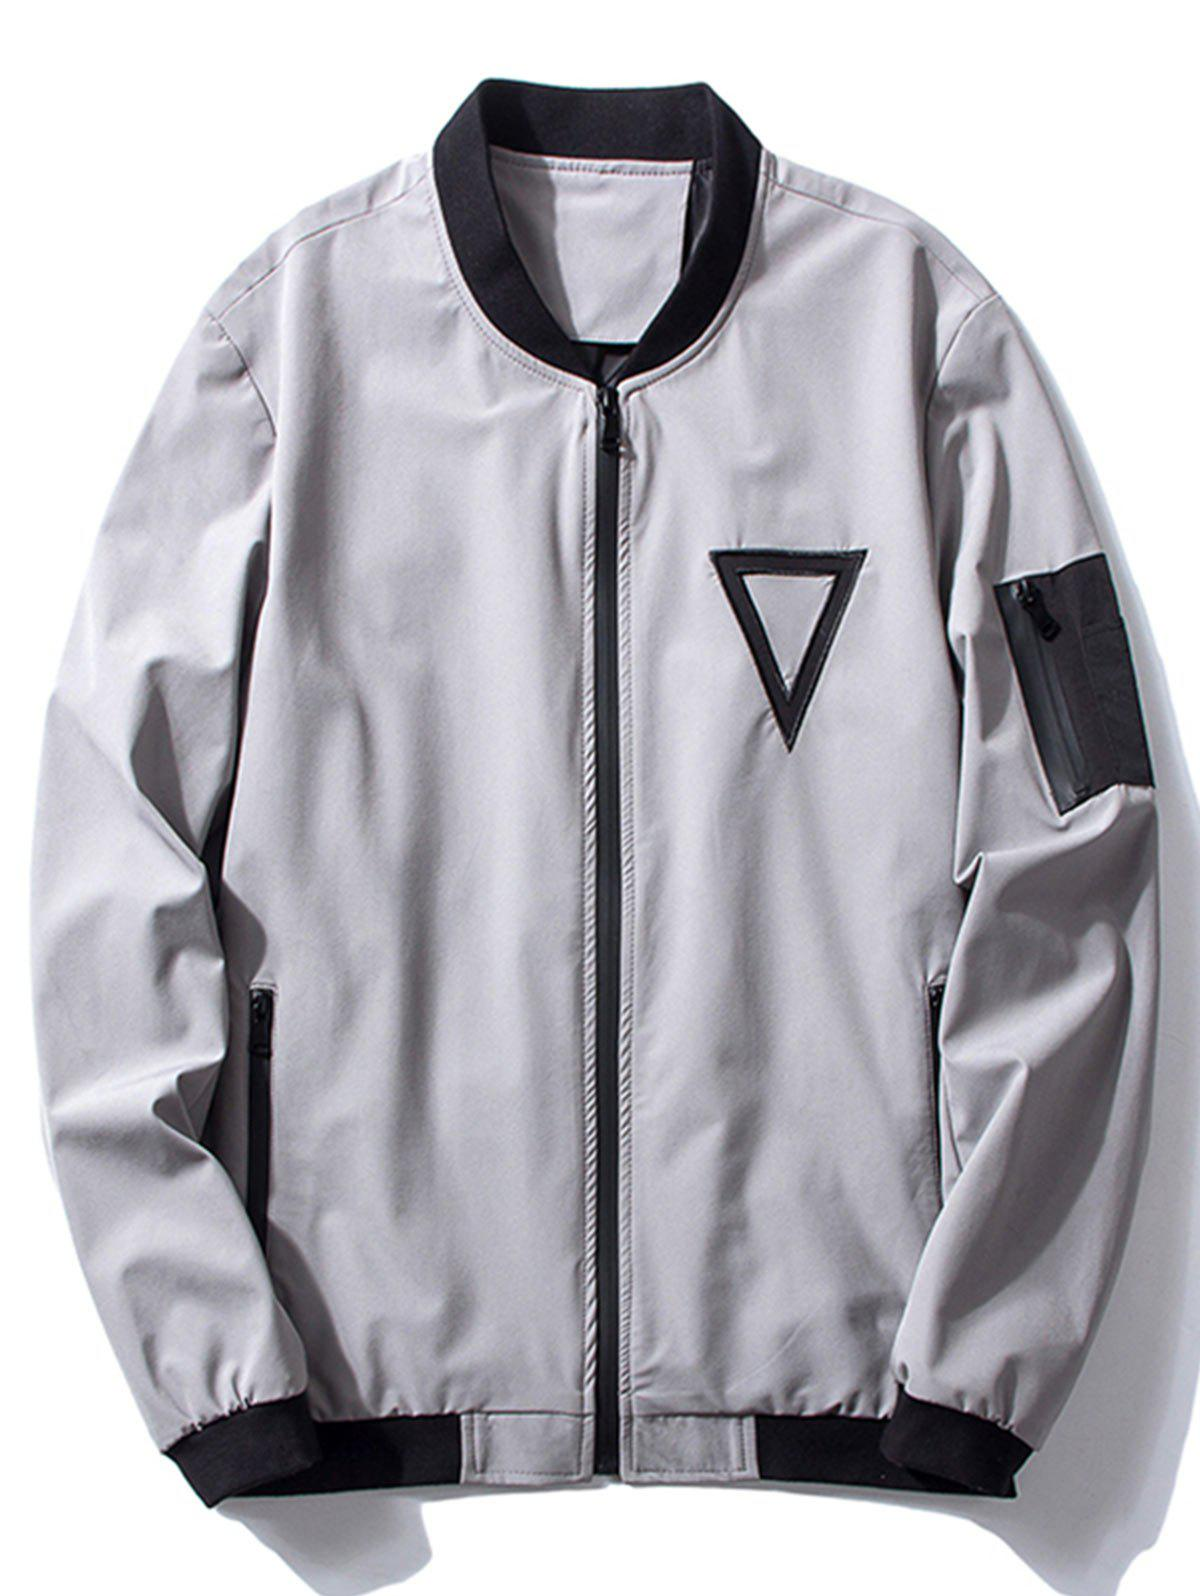 Stand Collar Triangle Embroidered Bomber Jacket 224516102